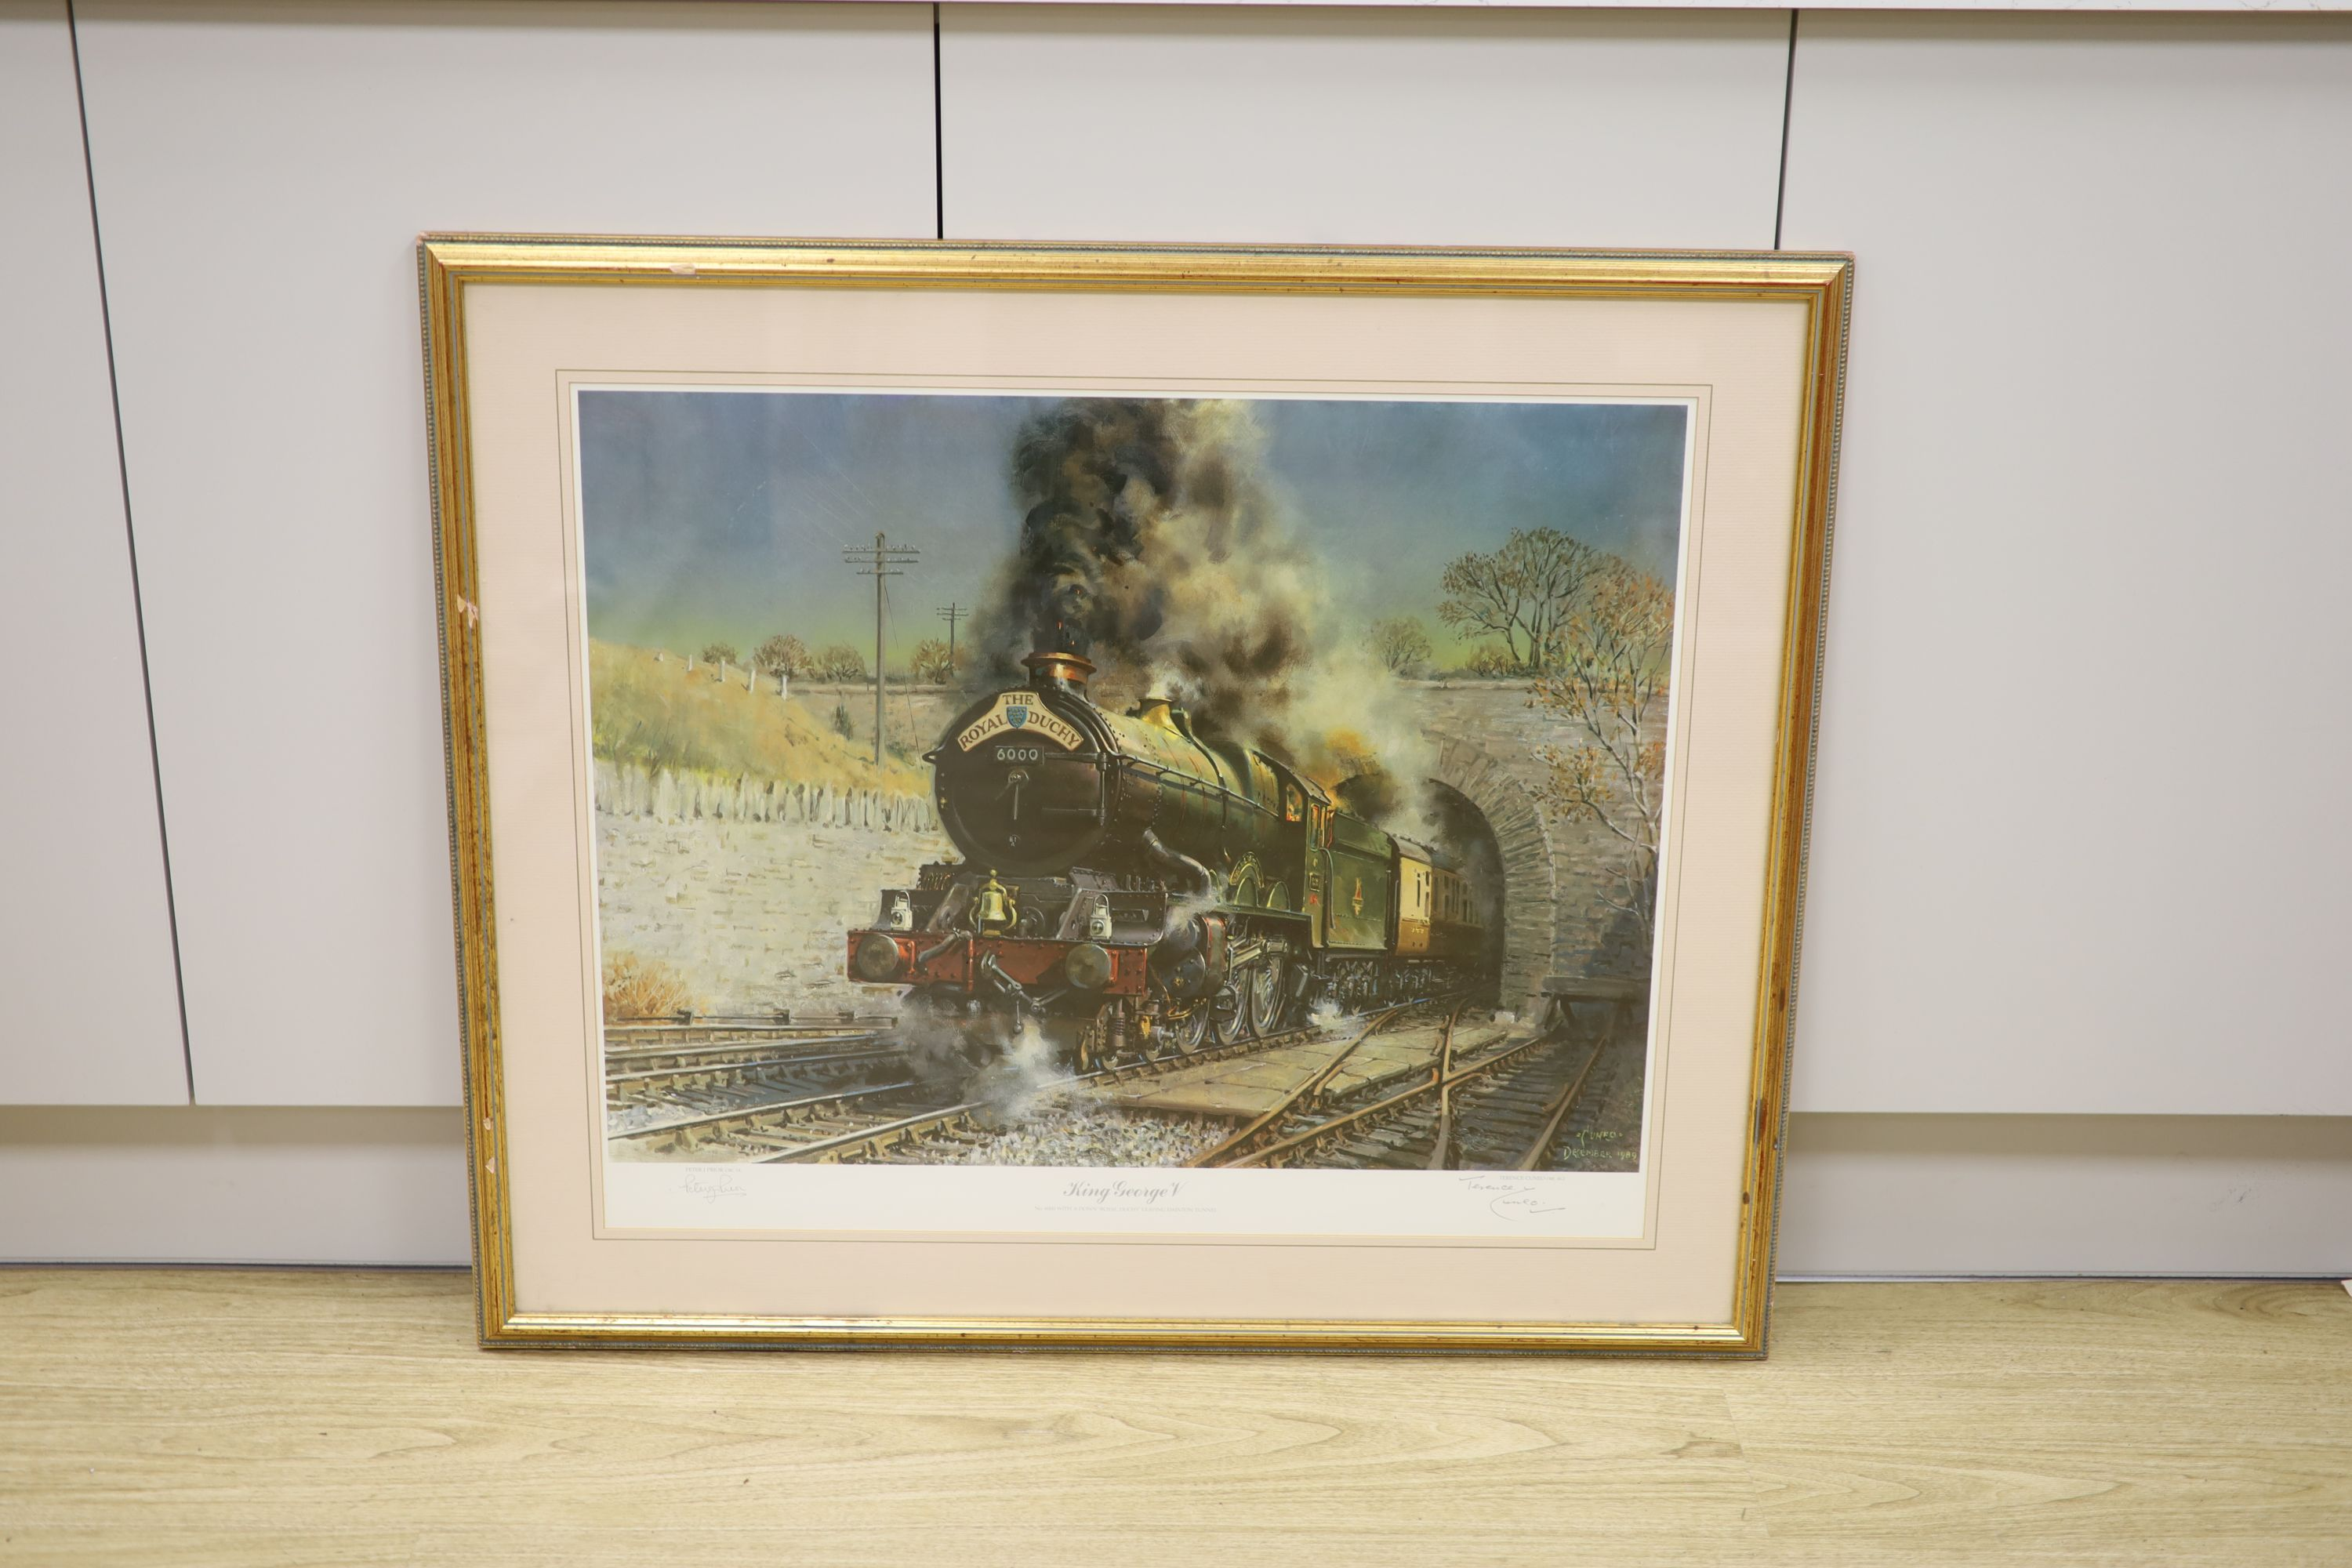 Terence Cuneo, signed print, 'King George V', signed by the artist and Peter Preior, one of 850, - Image 2 of 2